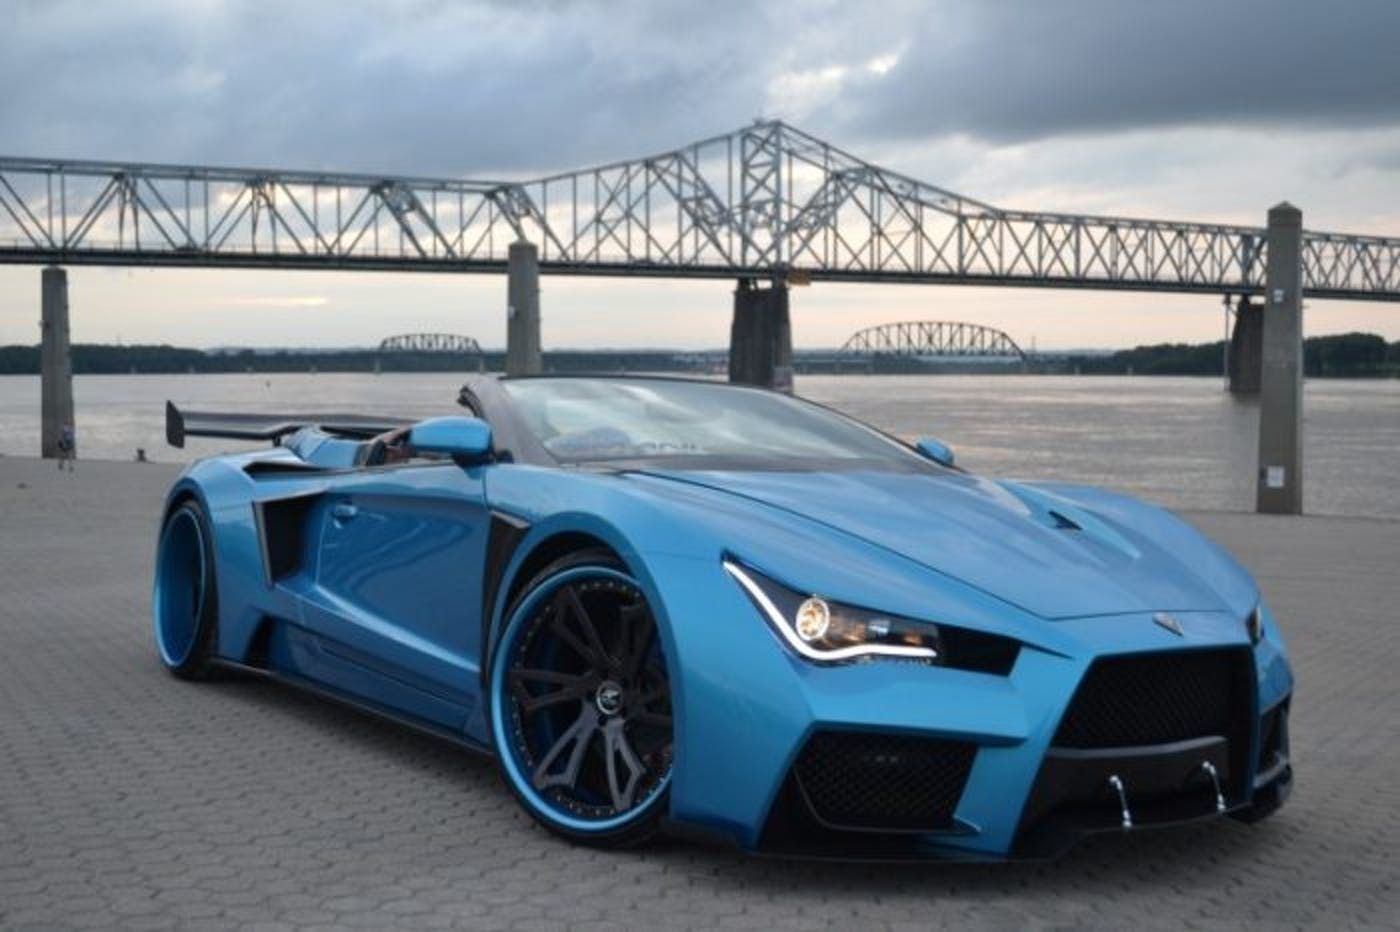 This Car Has Supercar Looks Without The Supercar Price Araba Arabalar